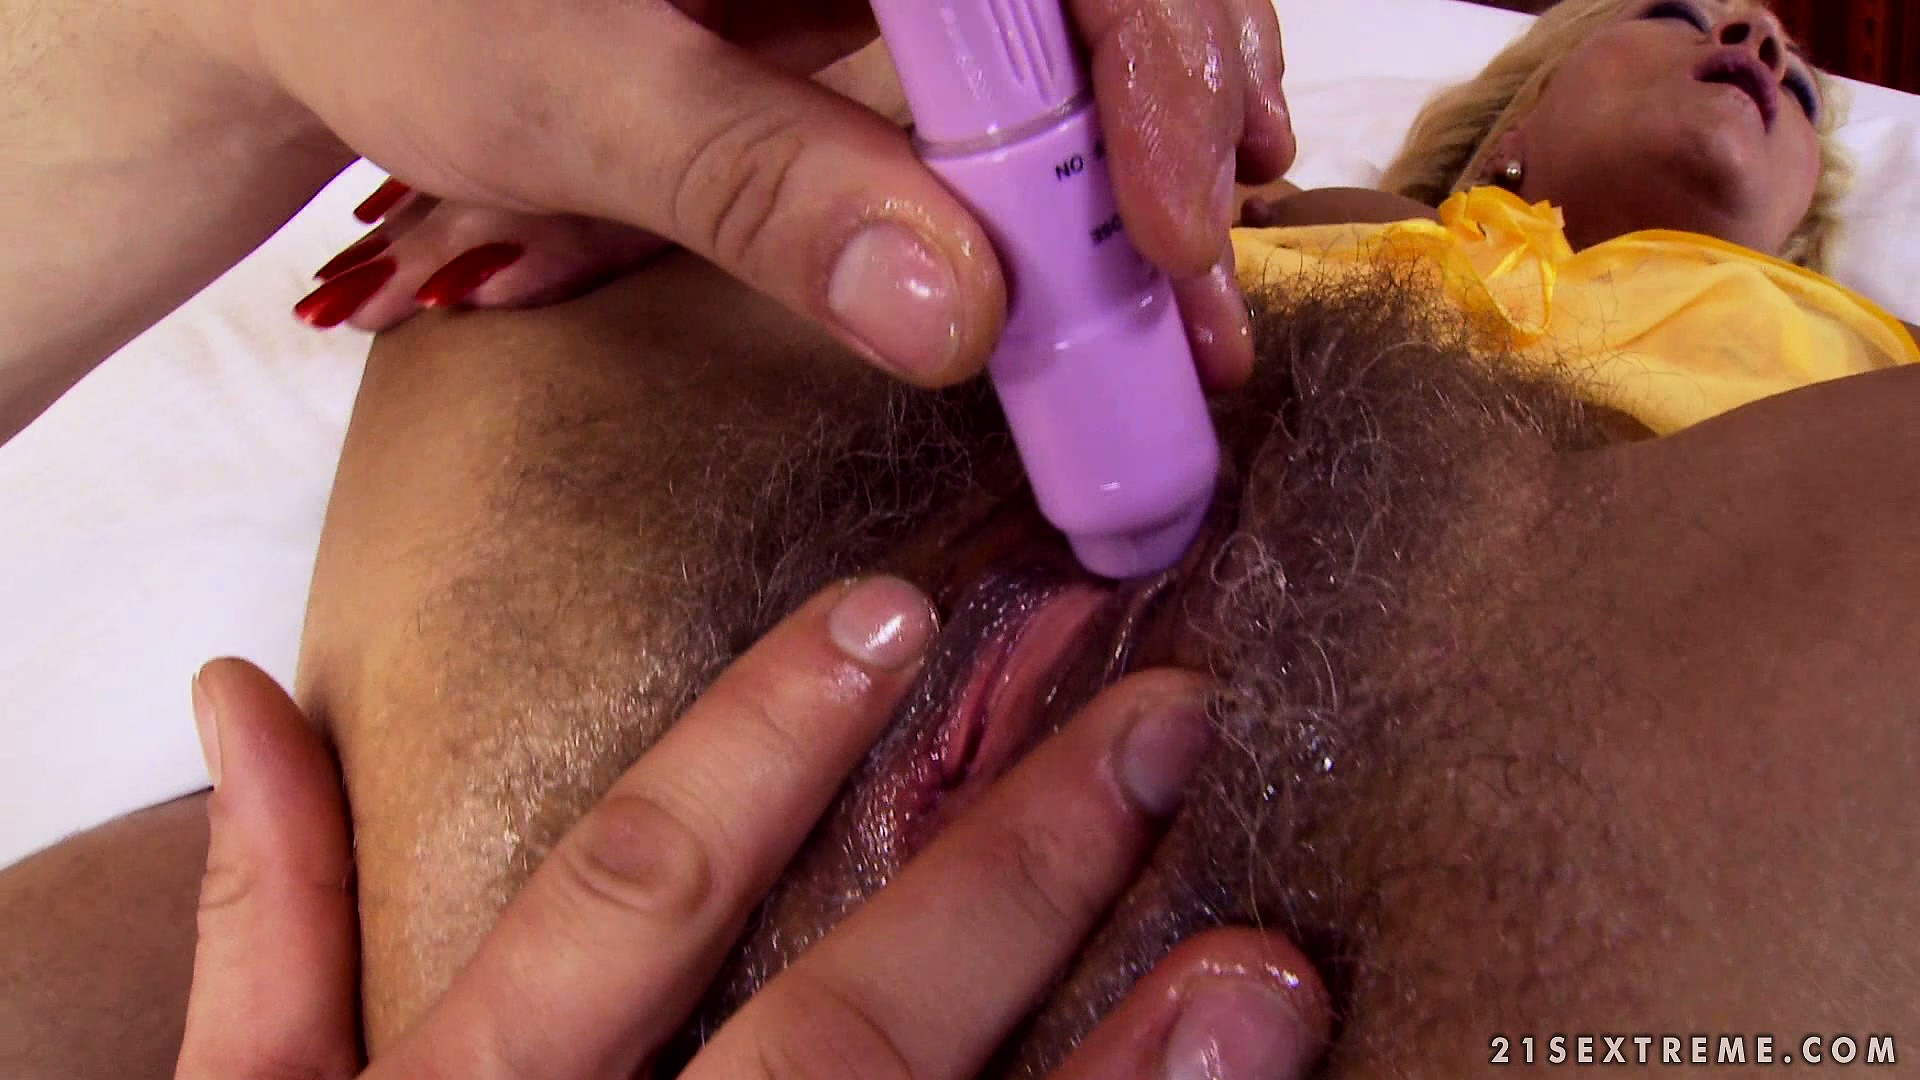 Porno Video of Shaved Casanova Concentrates All His Attention On That Old, Hairy Cunt